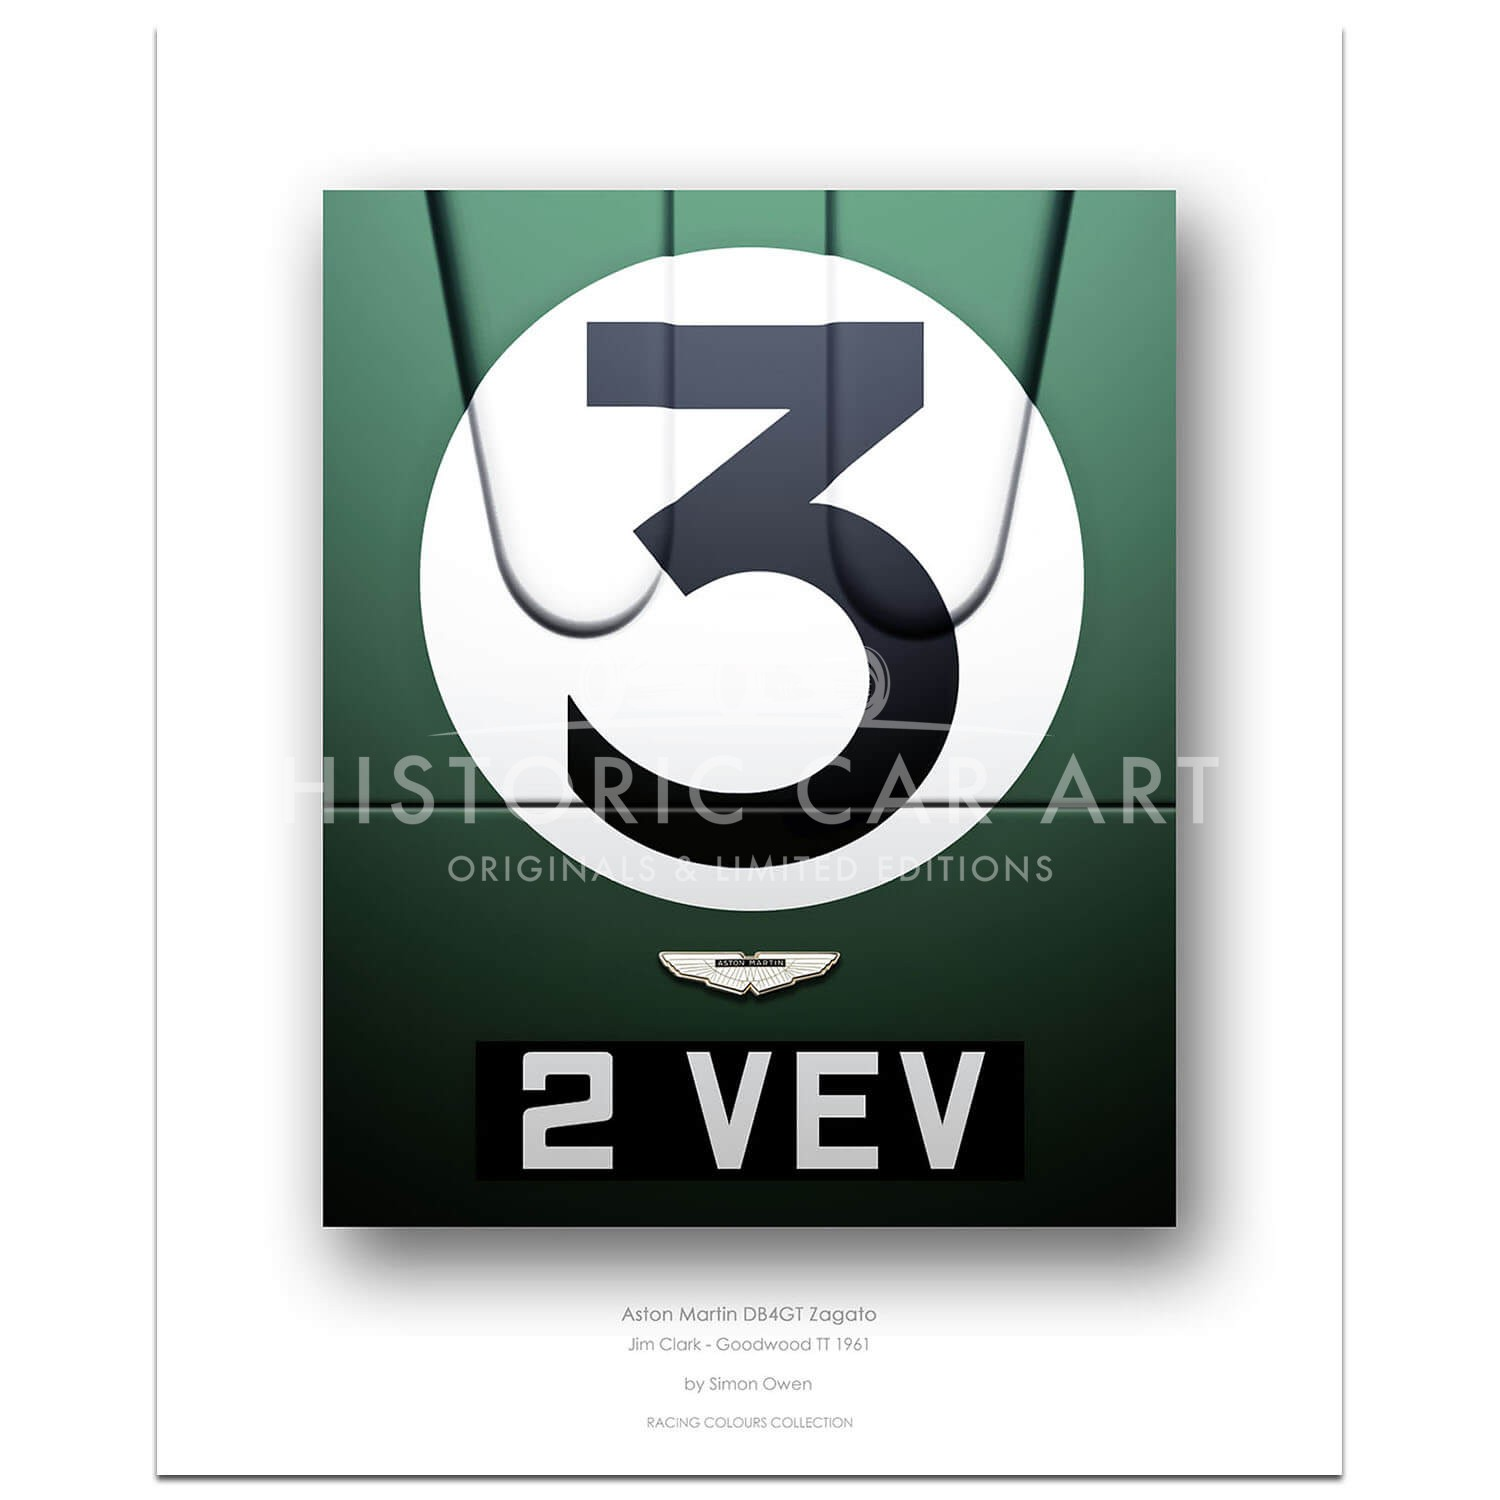 1961 Aston Martin DB4GT Zagato (Jim Clark / Goodwood / 2 VEV) - Print